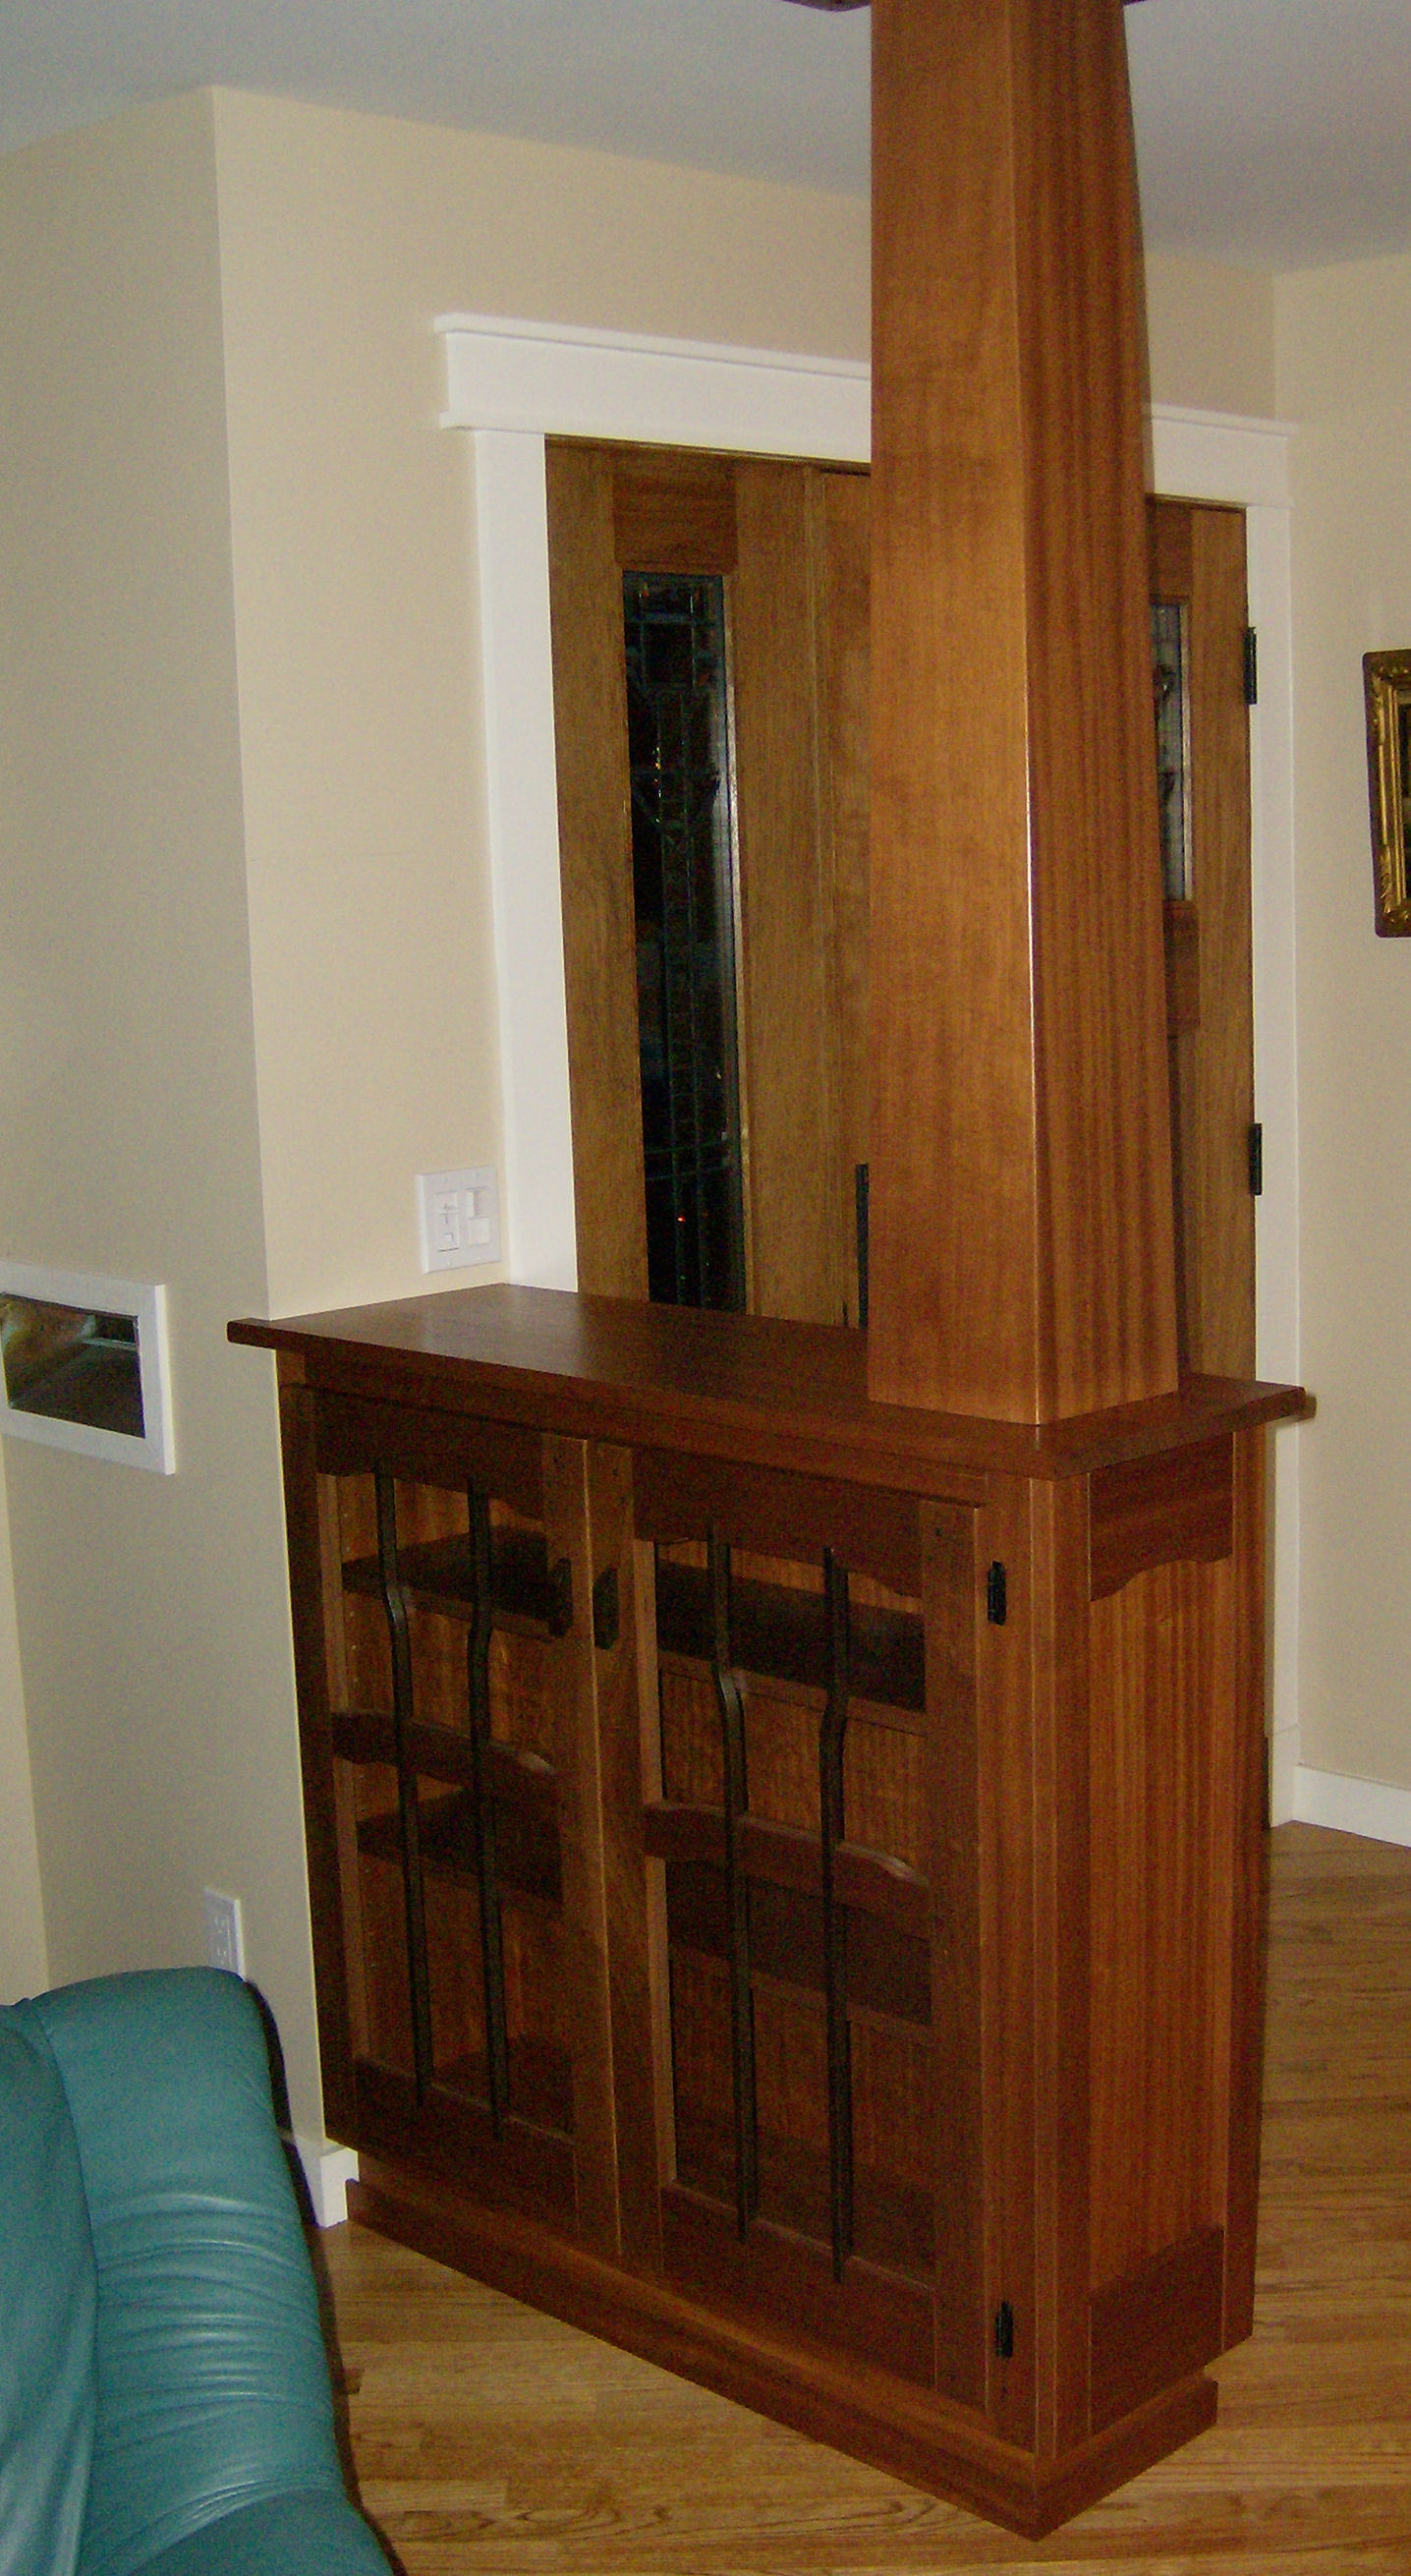 Heart of oak workshop authentic craftsman mission style built in cabinets